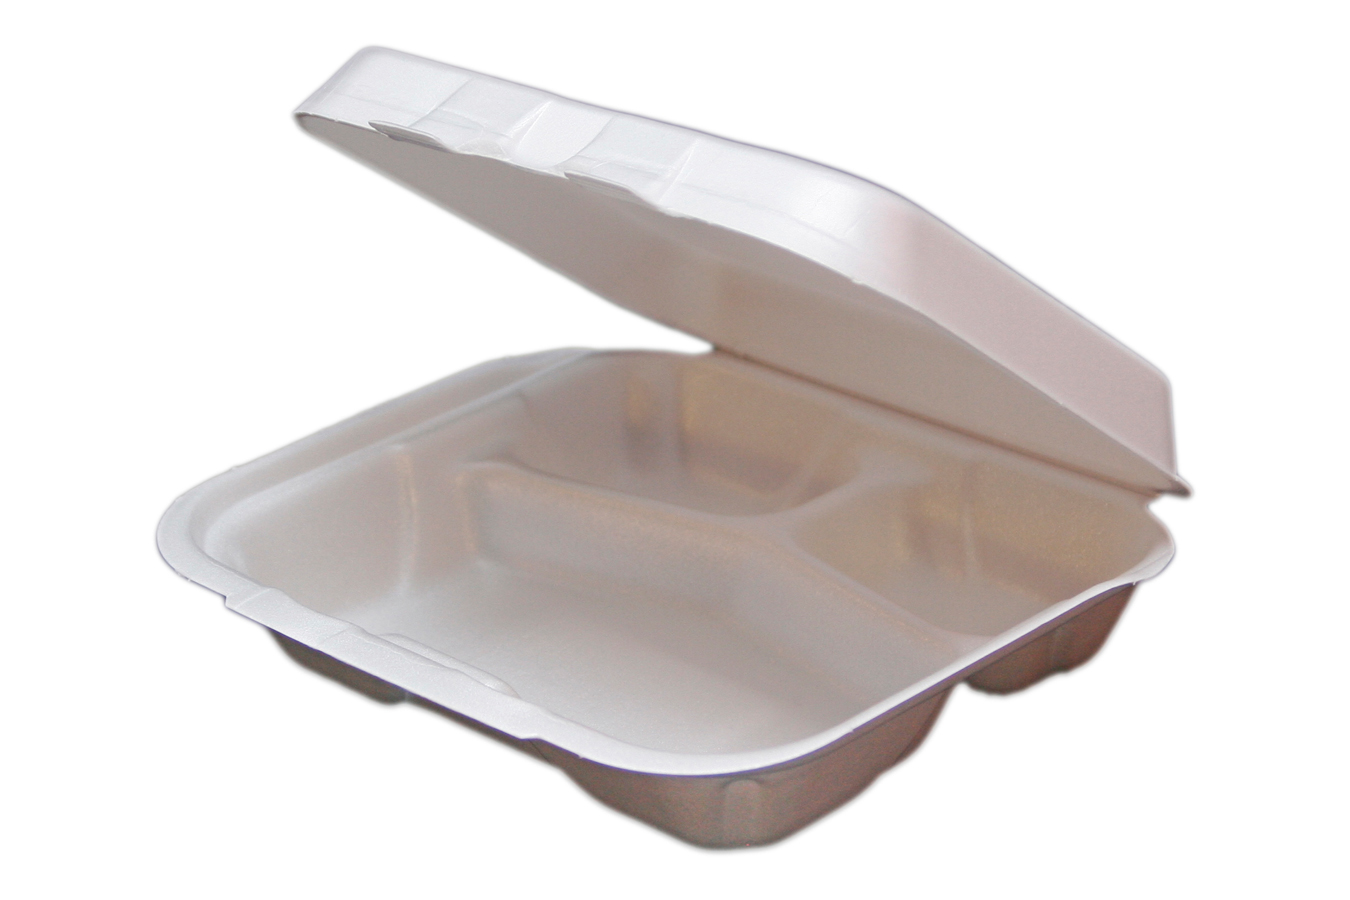 White non-vented double tab hinged foam takeout disposable container with 3 compartments